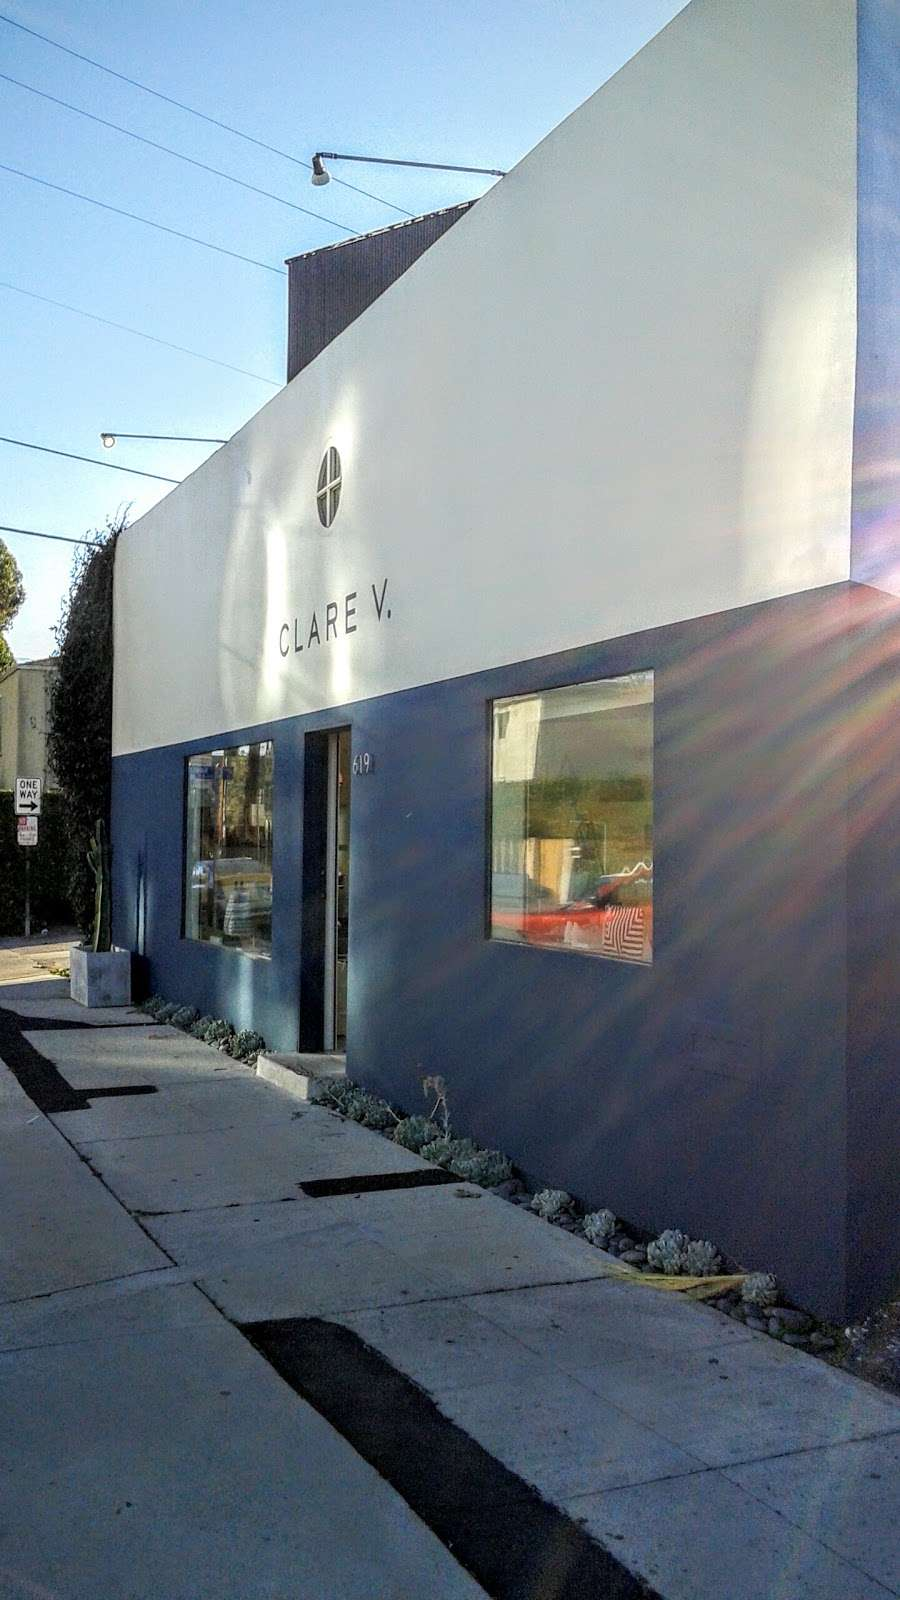 Clare V. - store  | Photo 1 of 2 | Address: 619 N Croft Ave, West Hollywood, CA 90048, USA | Phone: (323) 592-3115